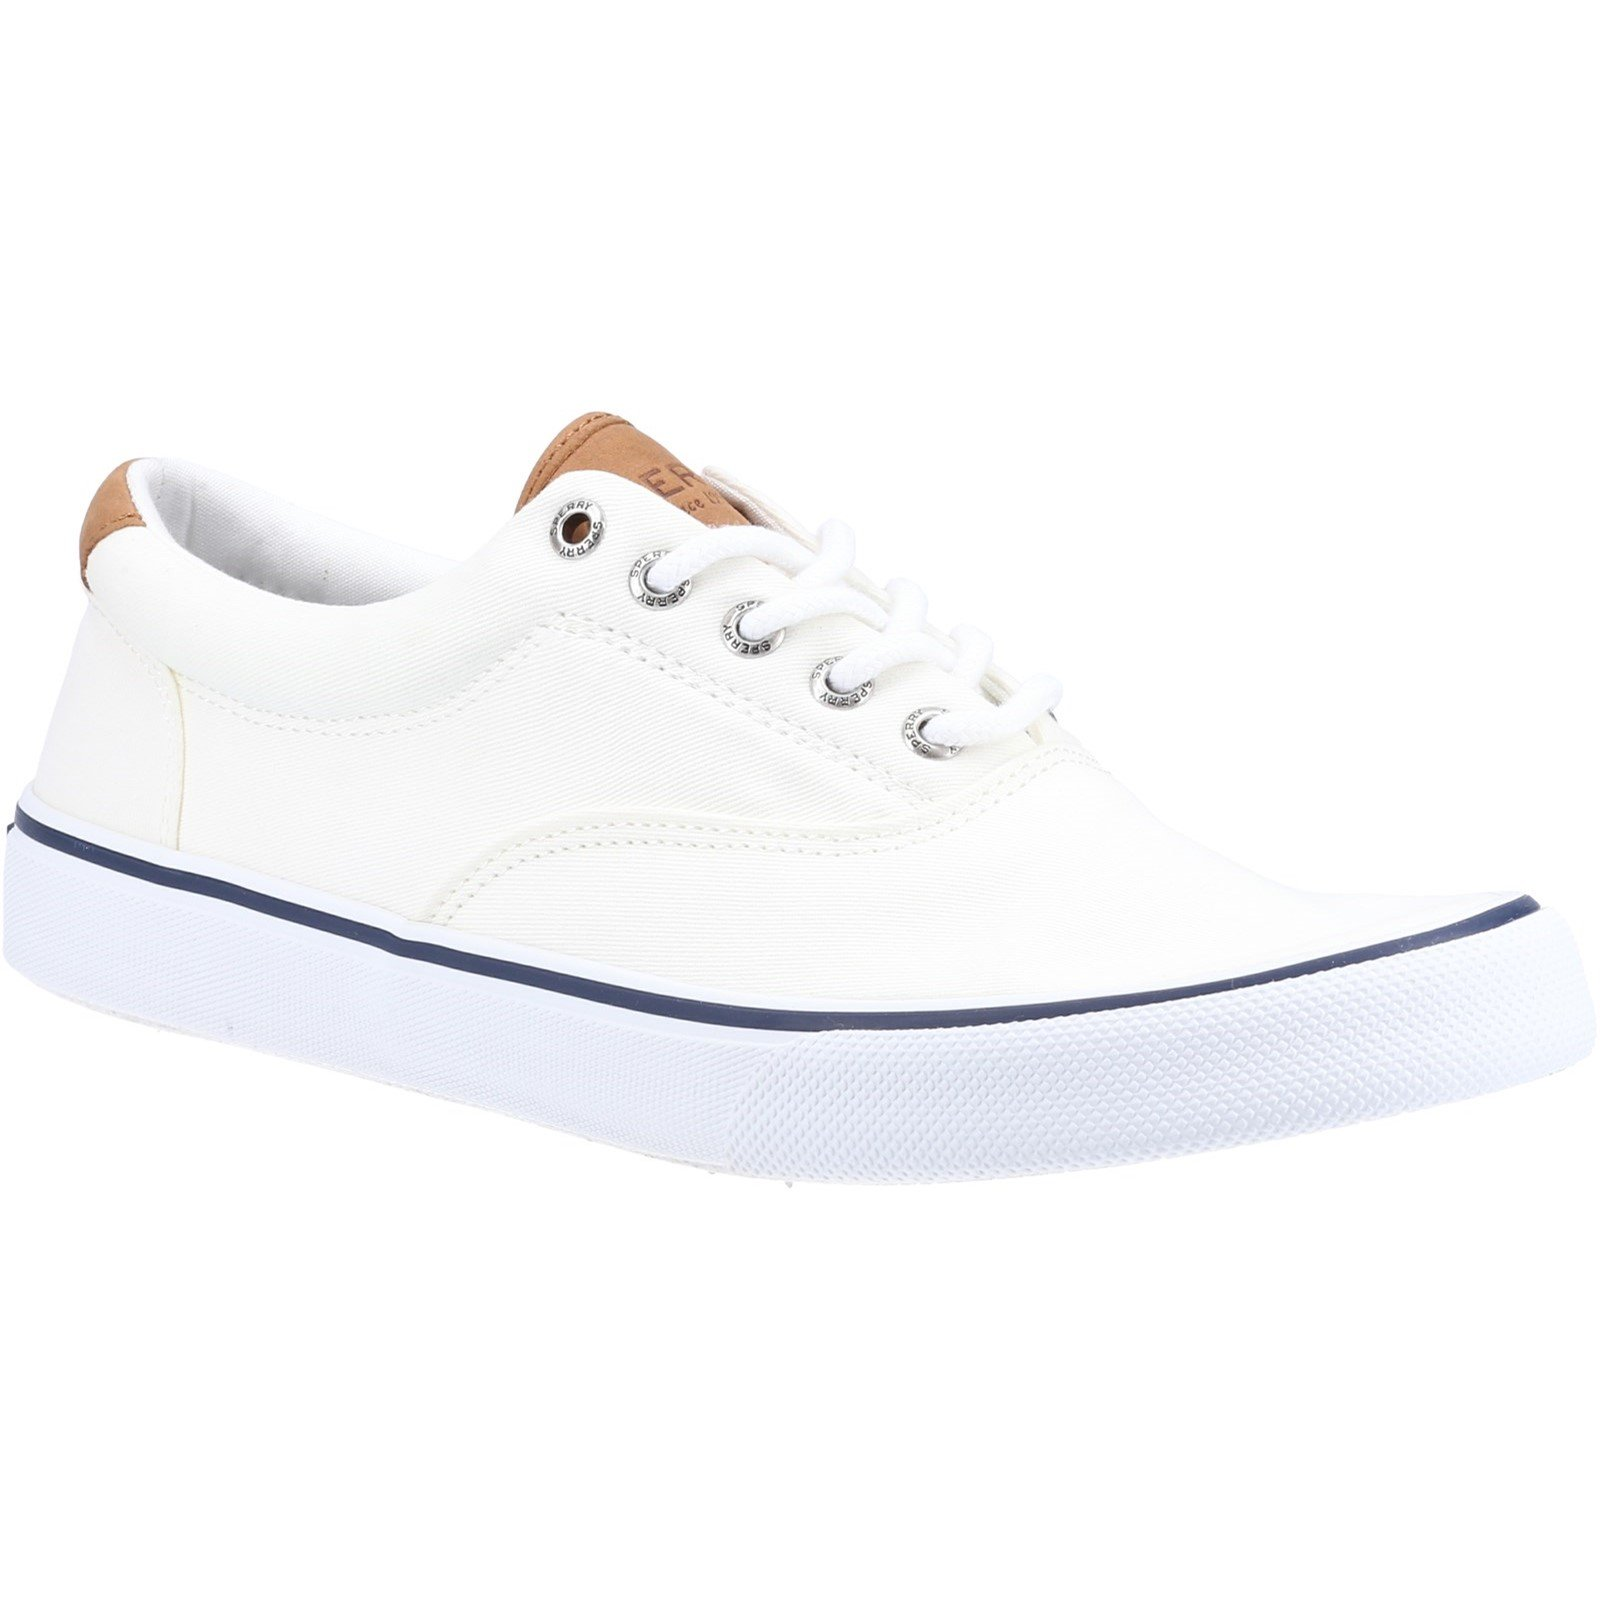 Sperry Men's Striper II CVO Canvas Trainers Various Colours 32397 - Salt Washed White 12